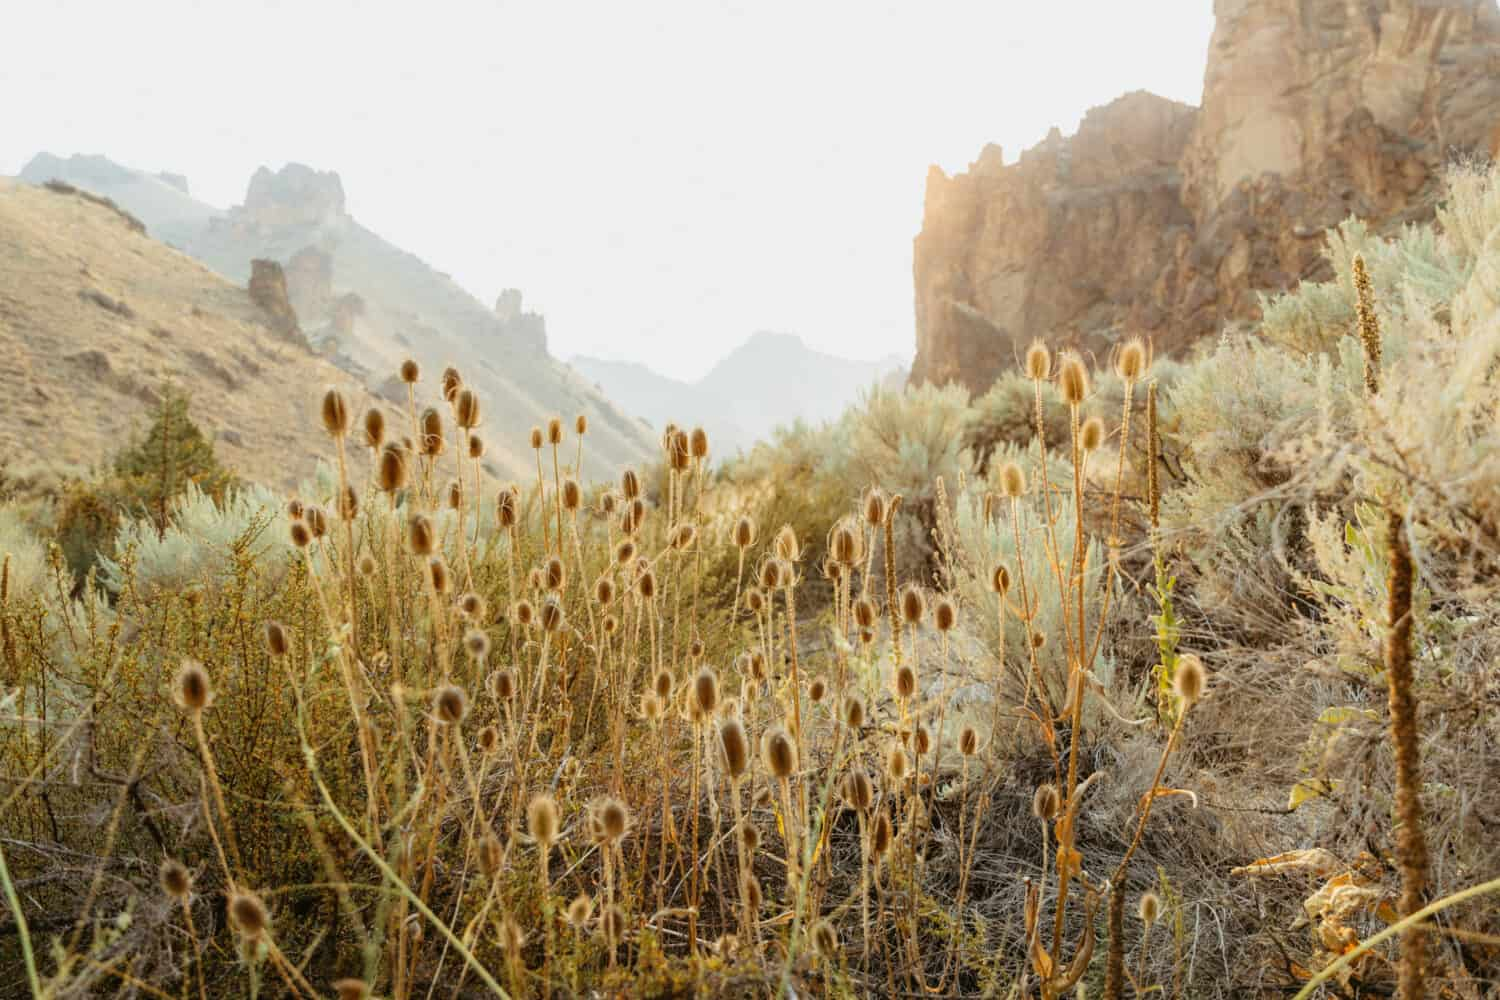 Flora and Fauna in Eastern Oregon - Owyhee Canyonlands